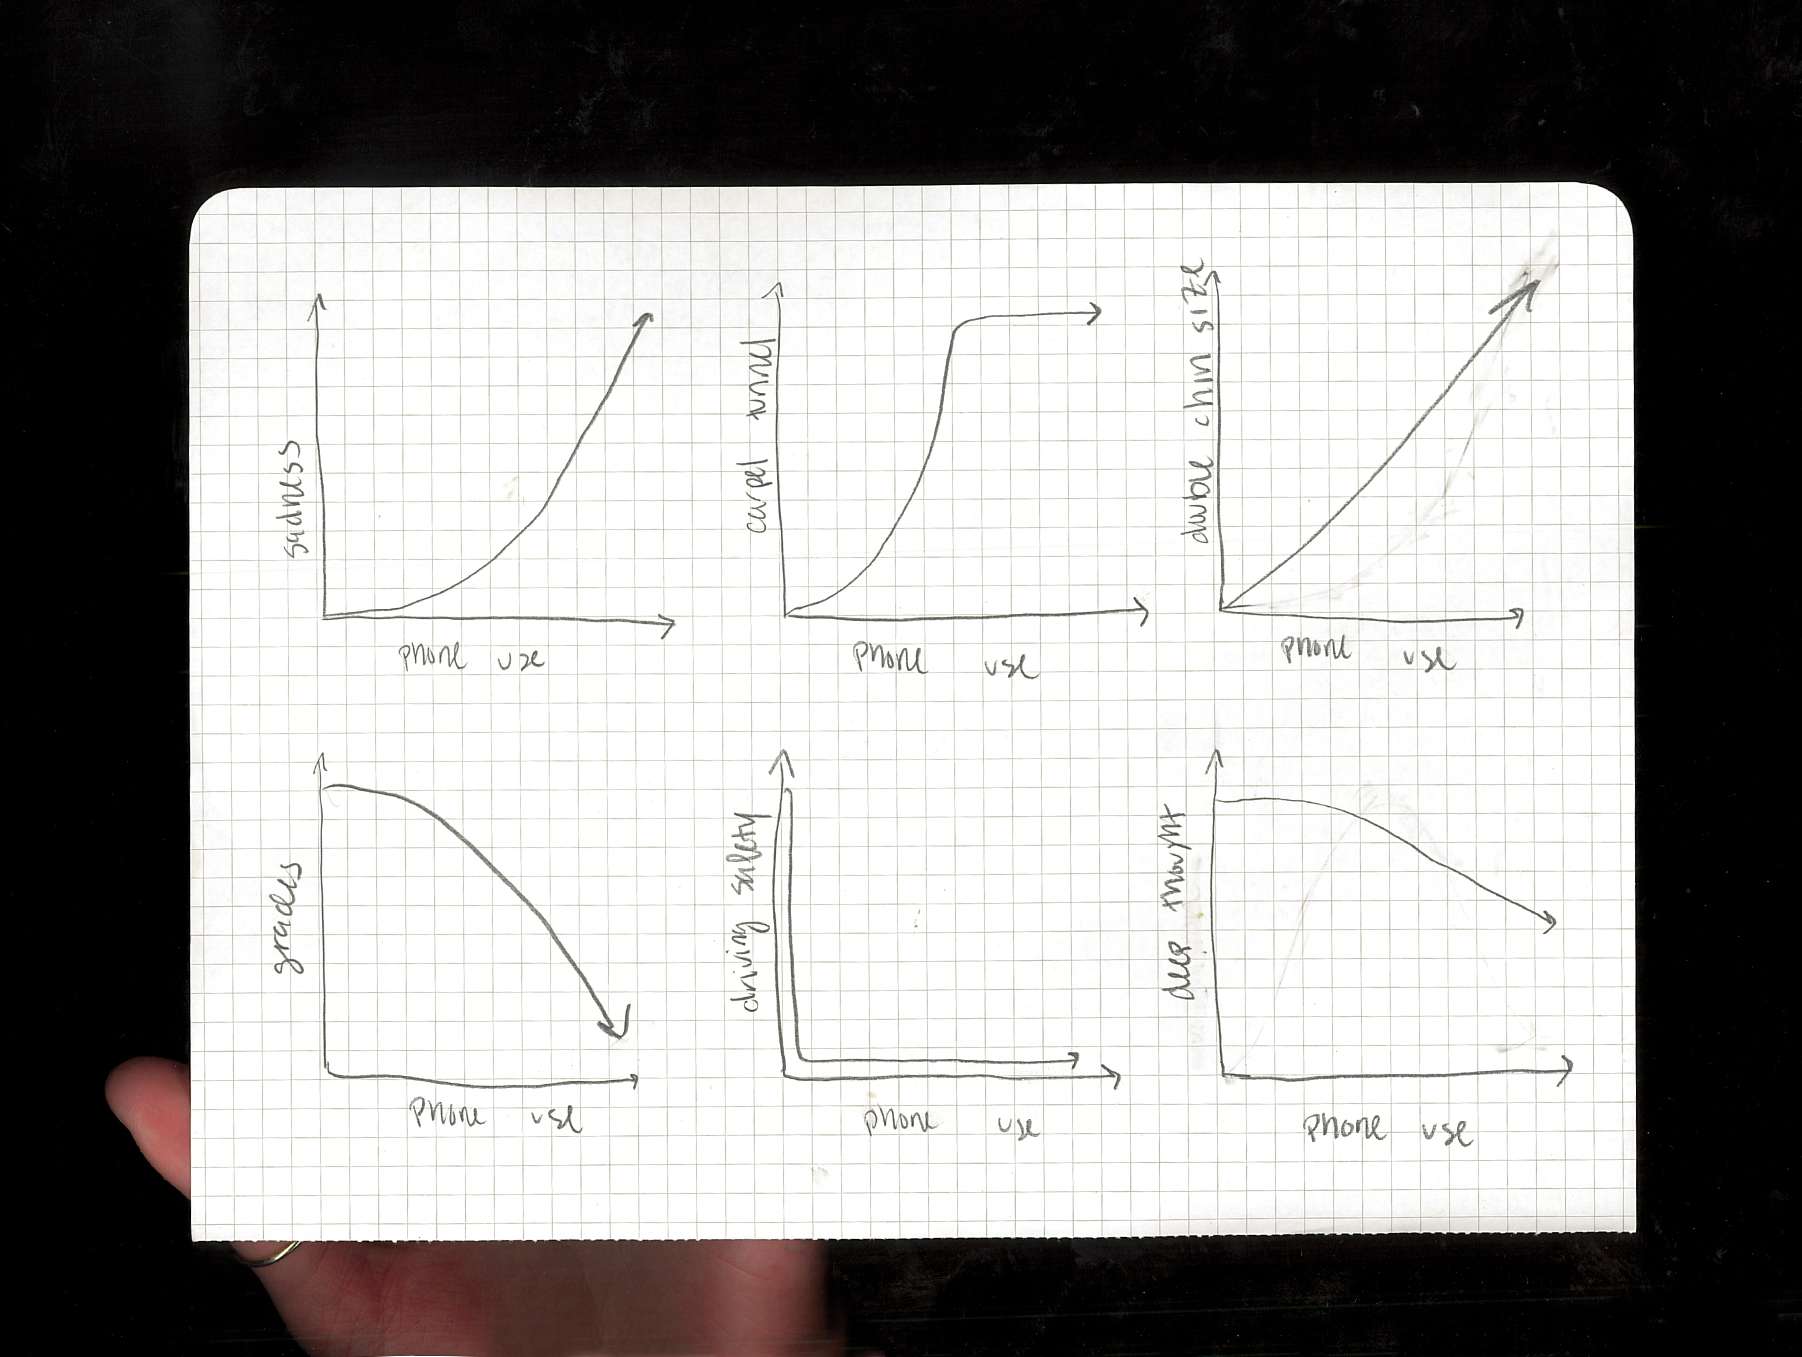 Argiro_Phone_Graphs_2.jpg